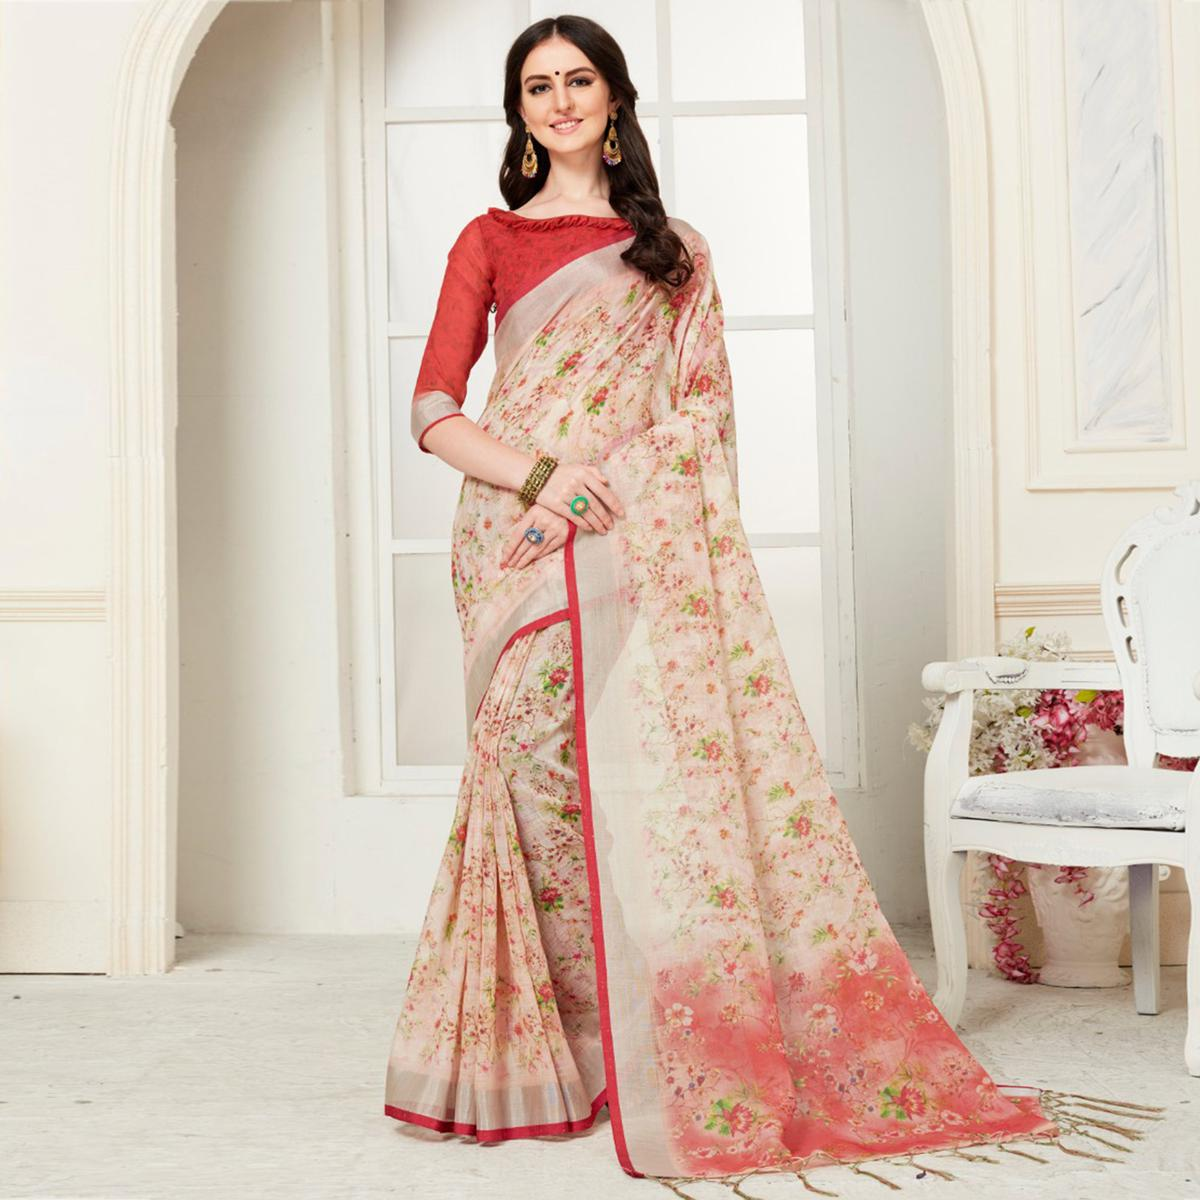 Capricious Cream Colored Casual Floral Digital Printed Linen Saree